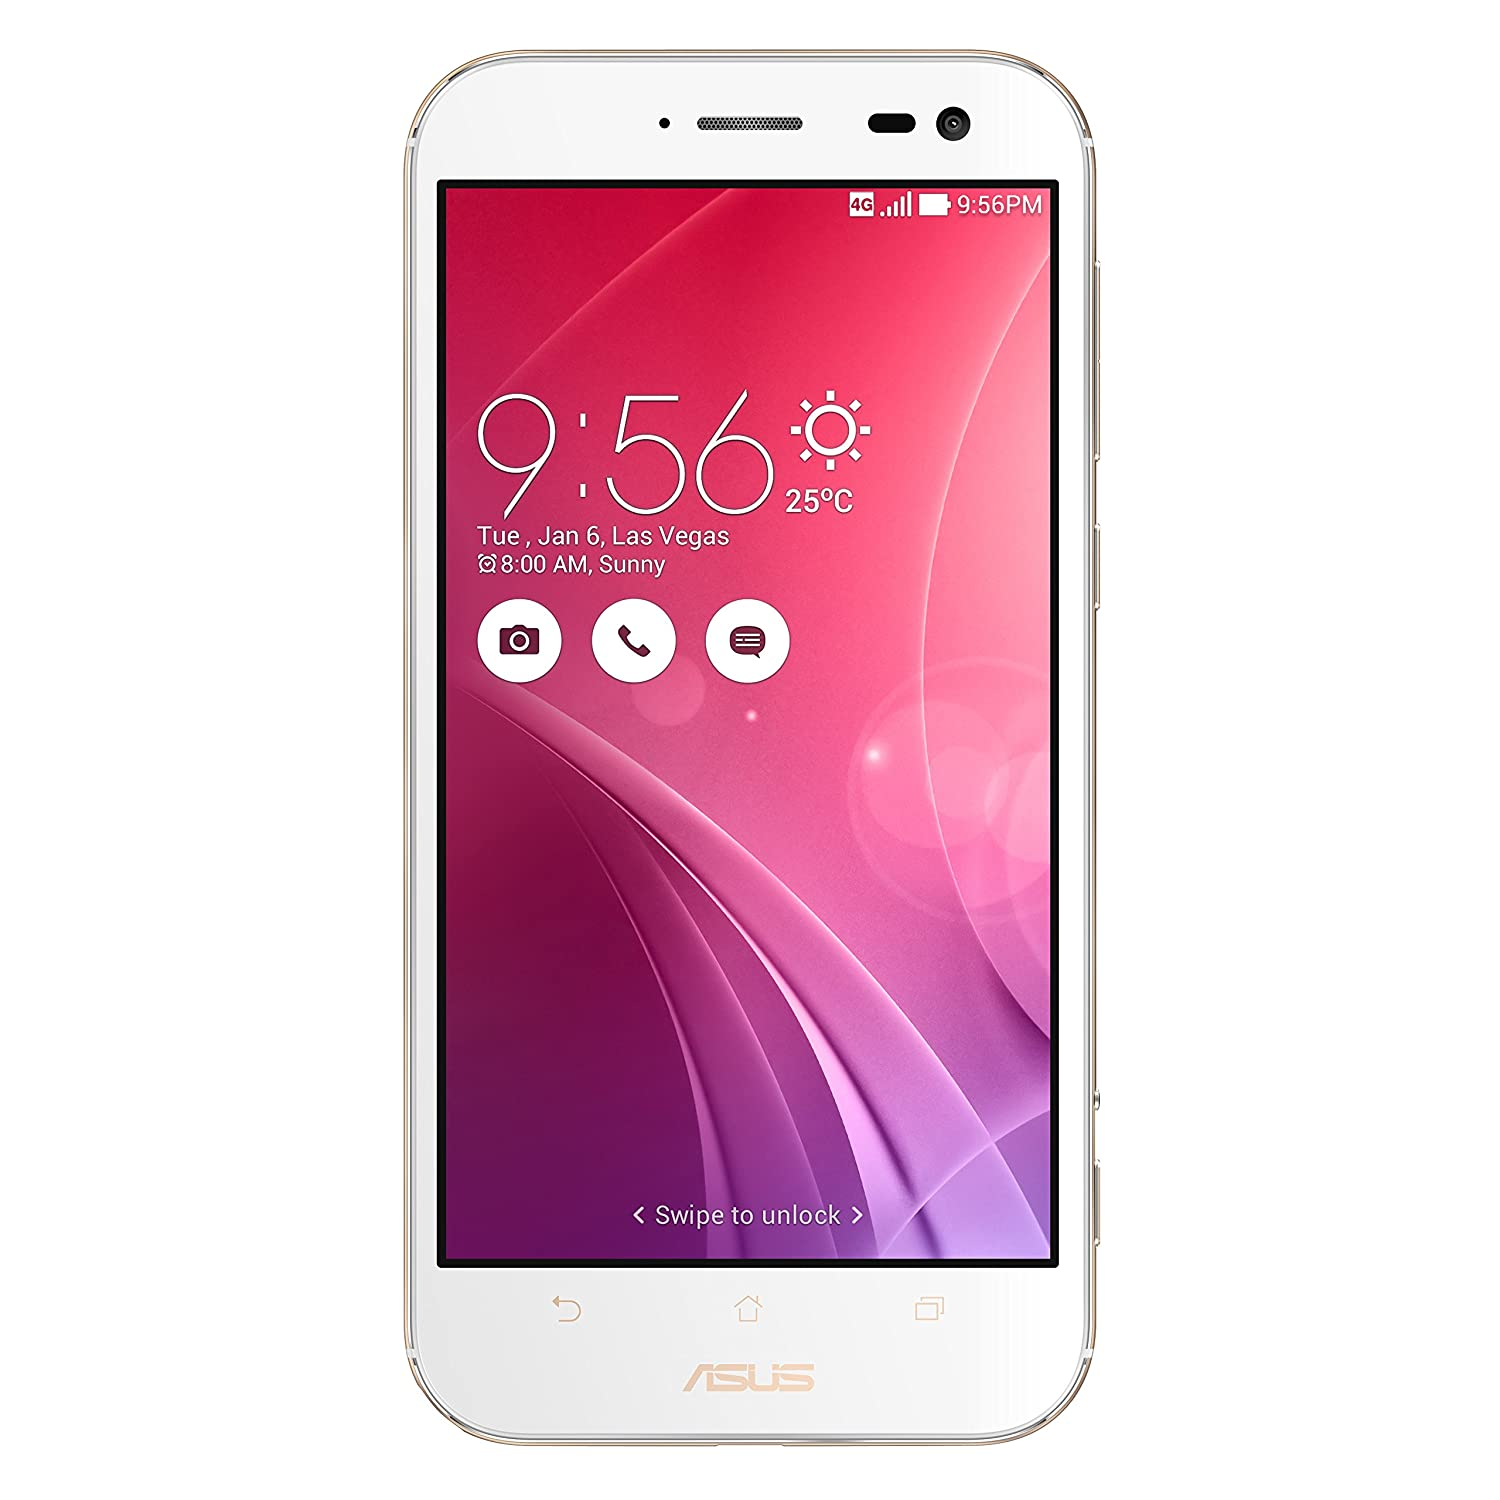 ASUS Zenfone ZOOM - Smartphone libre Android (pantalla 5.5 ...